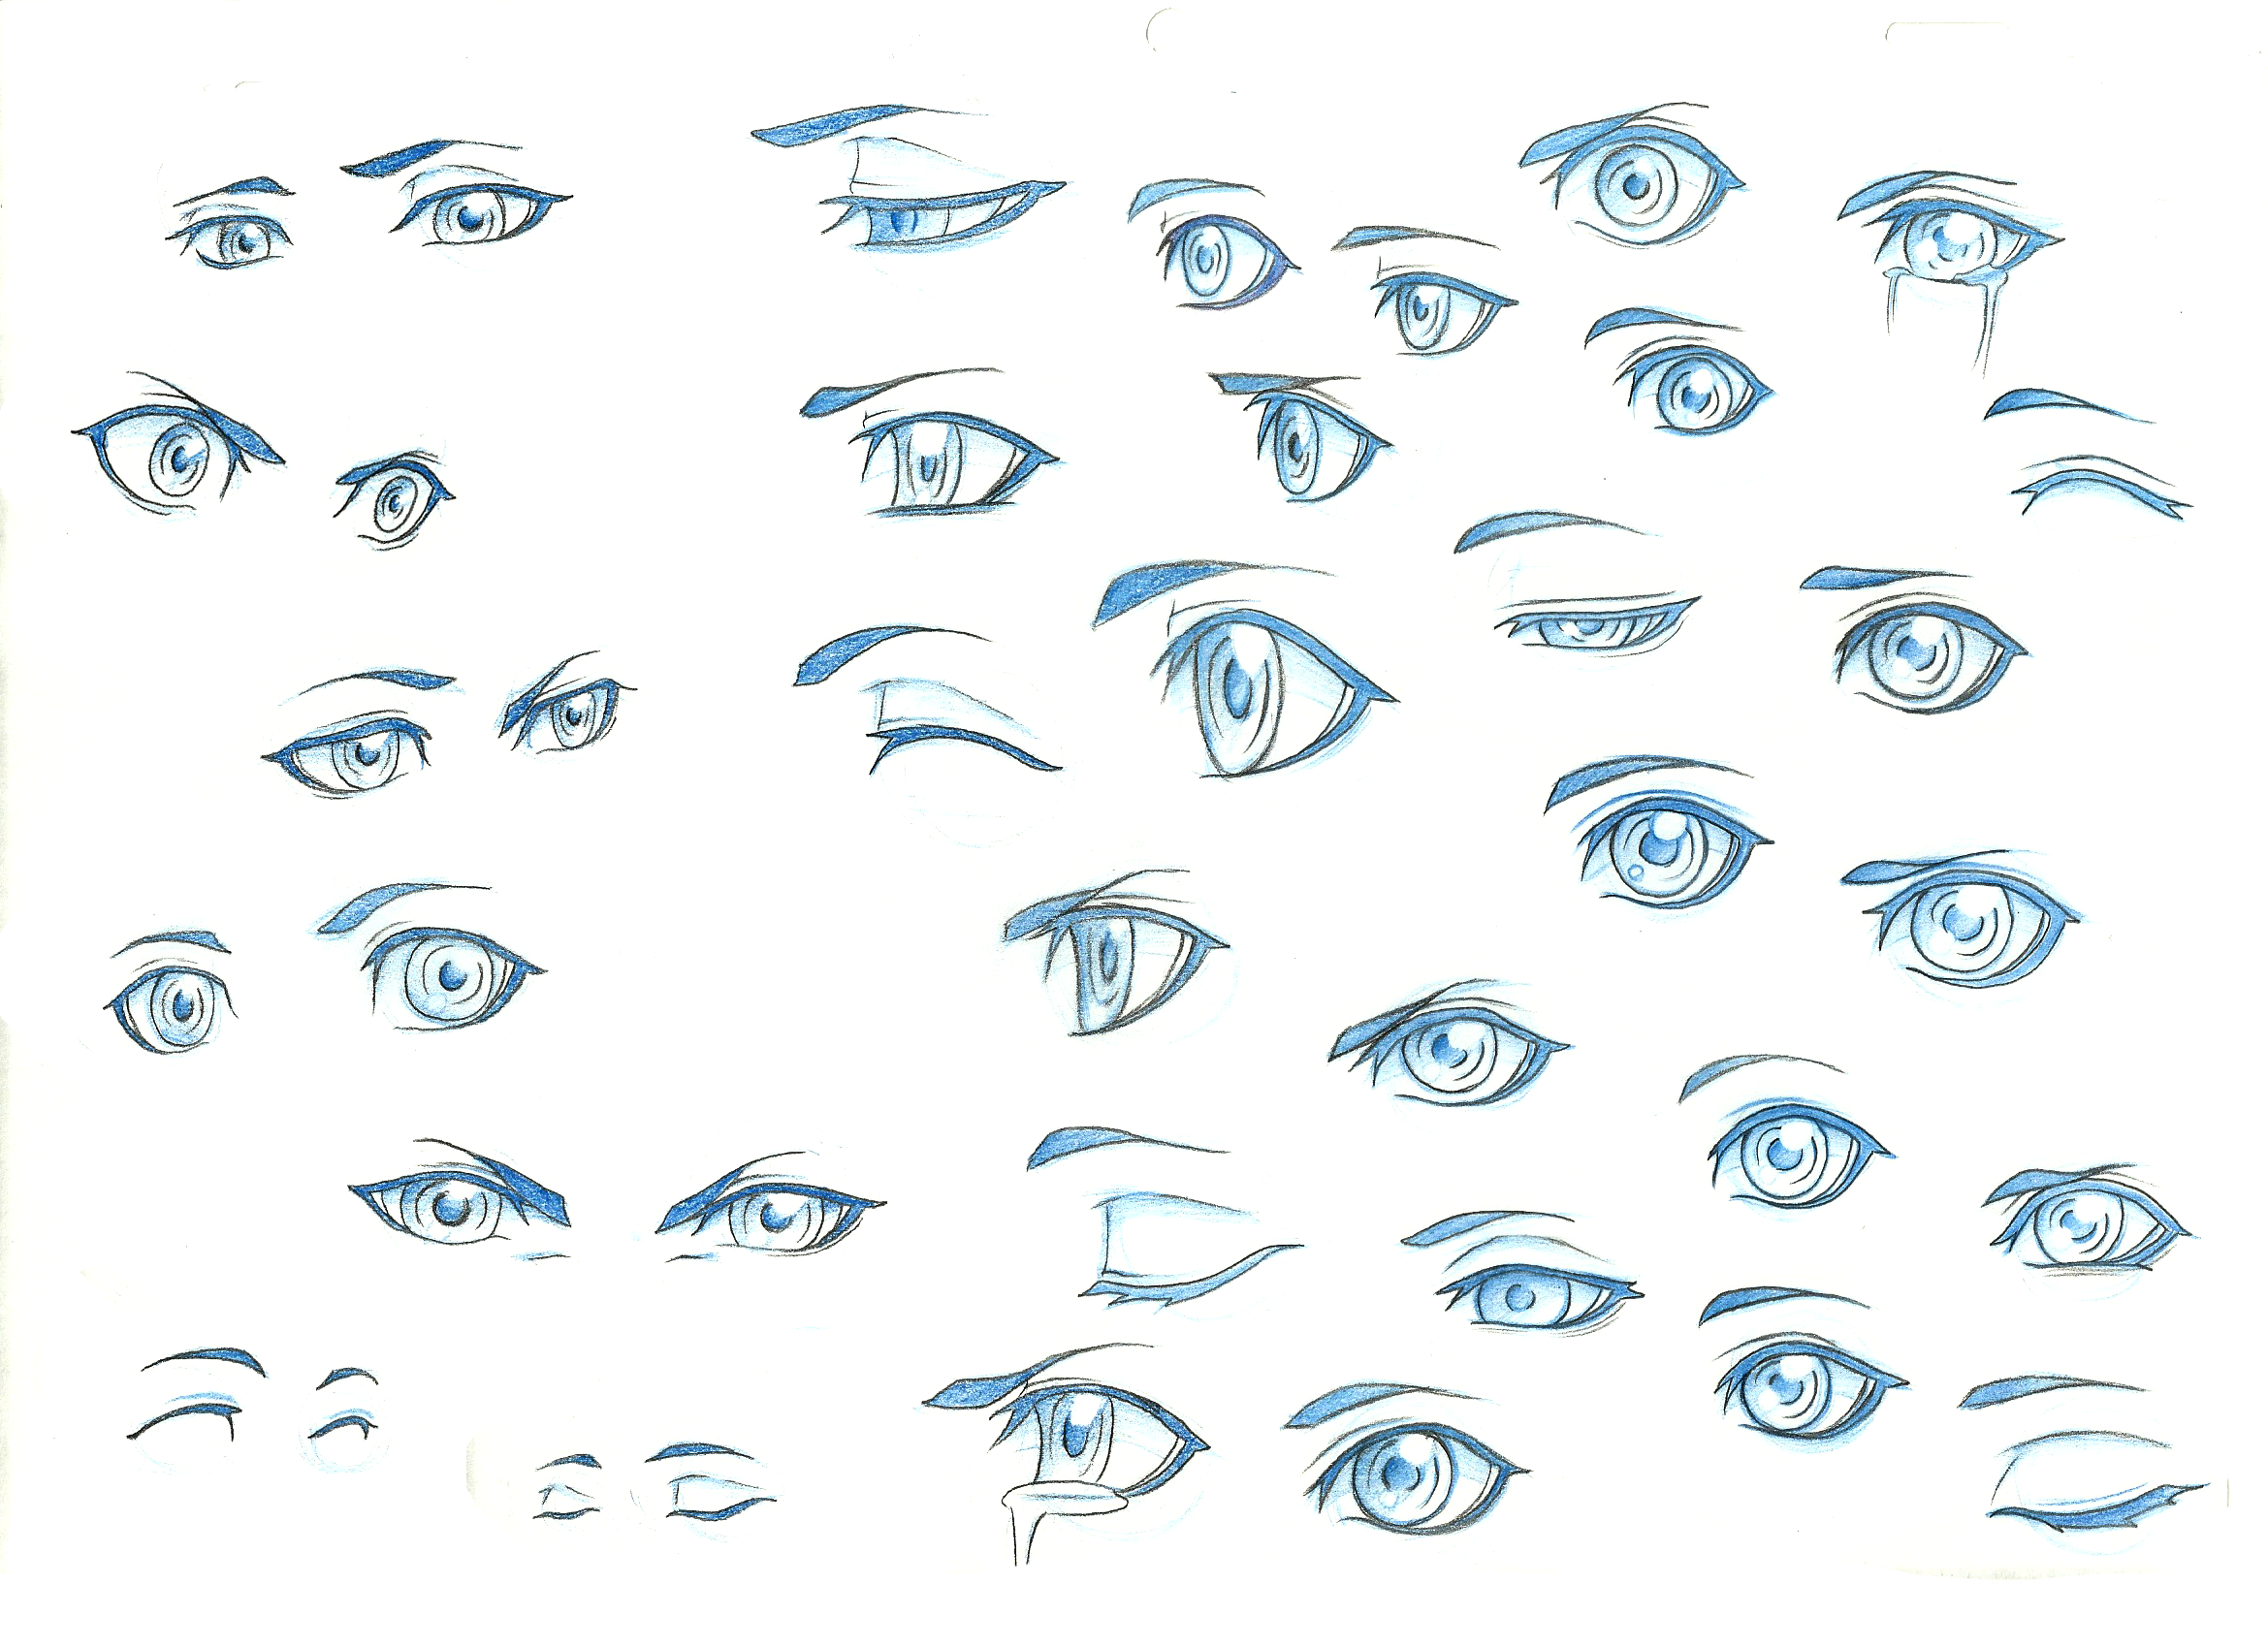 Eye Ref 1 By Theshionproject On Deviantart Anime Eyes Manga Eyes Eye Drawing Tutorials